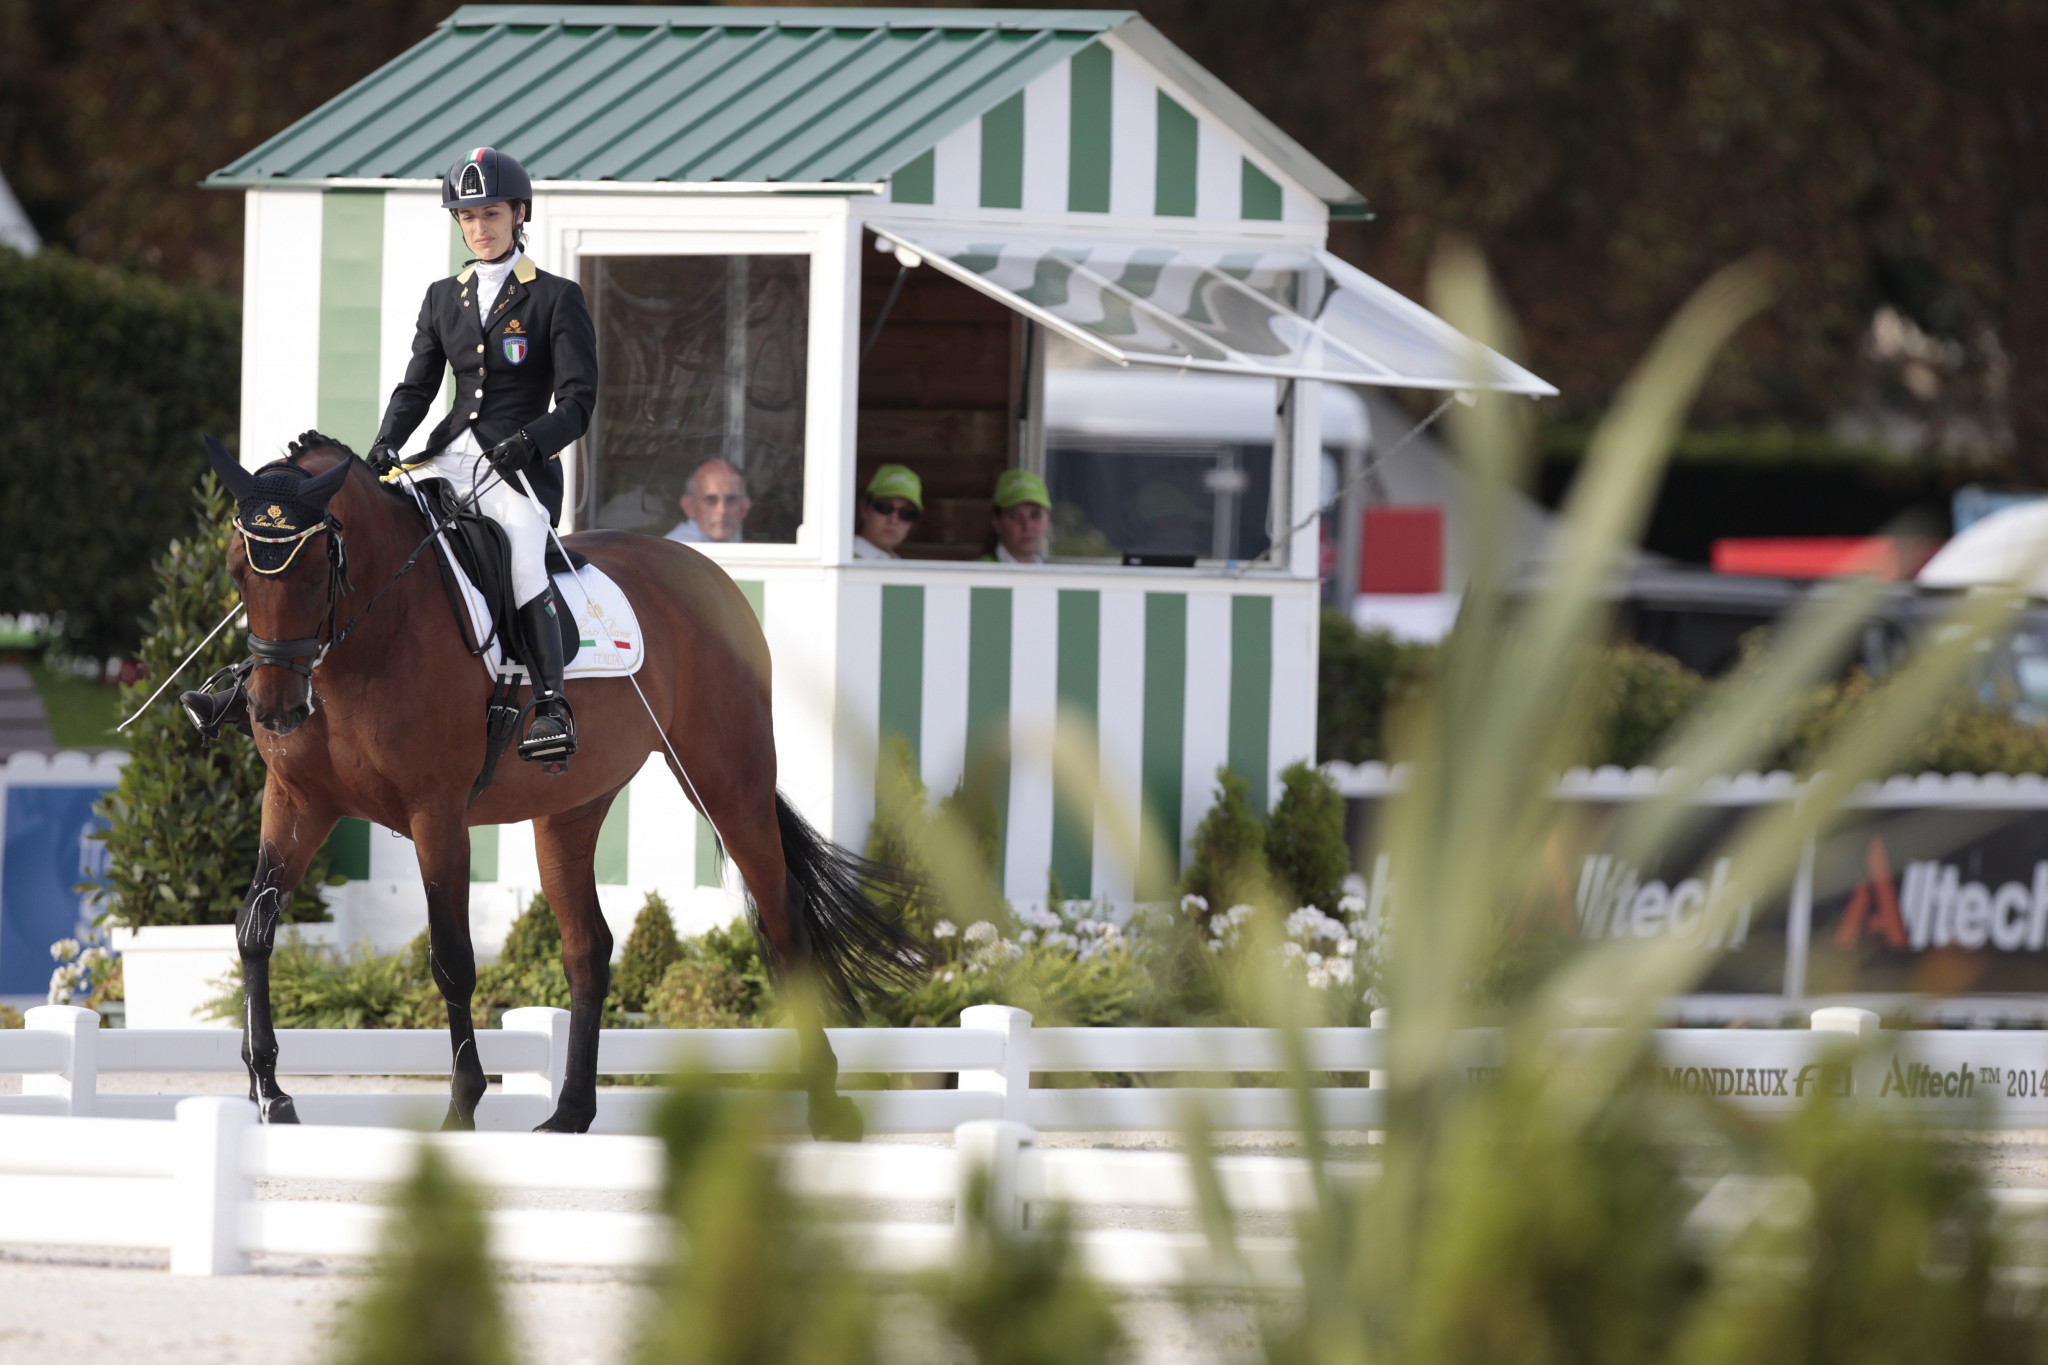 Dressage rider Sara Morganti scooped the women's accolade in Rome ©Getty Images